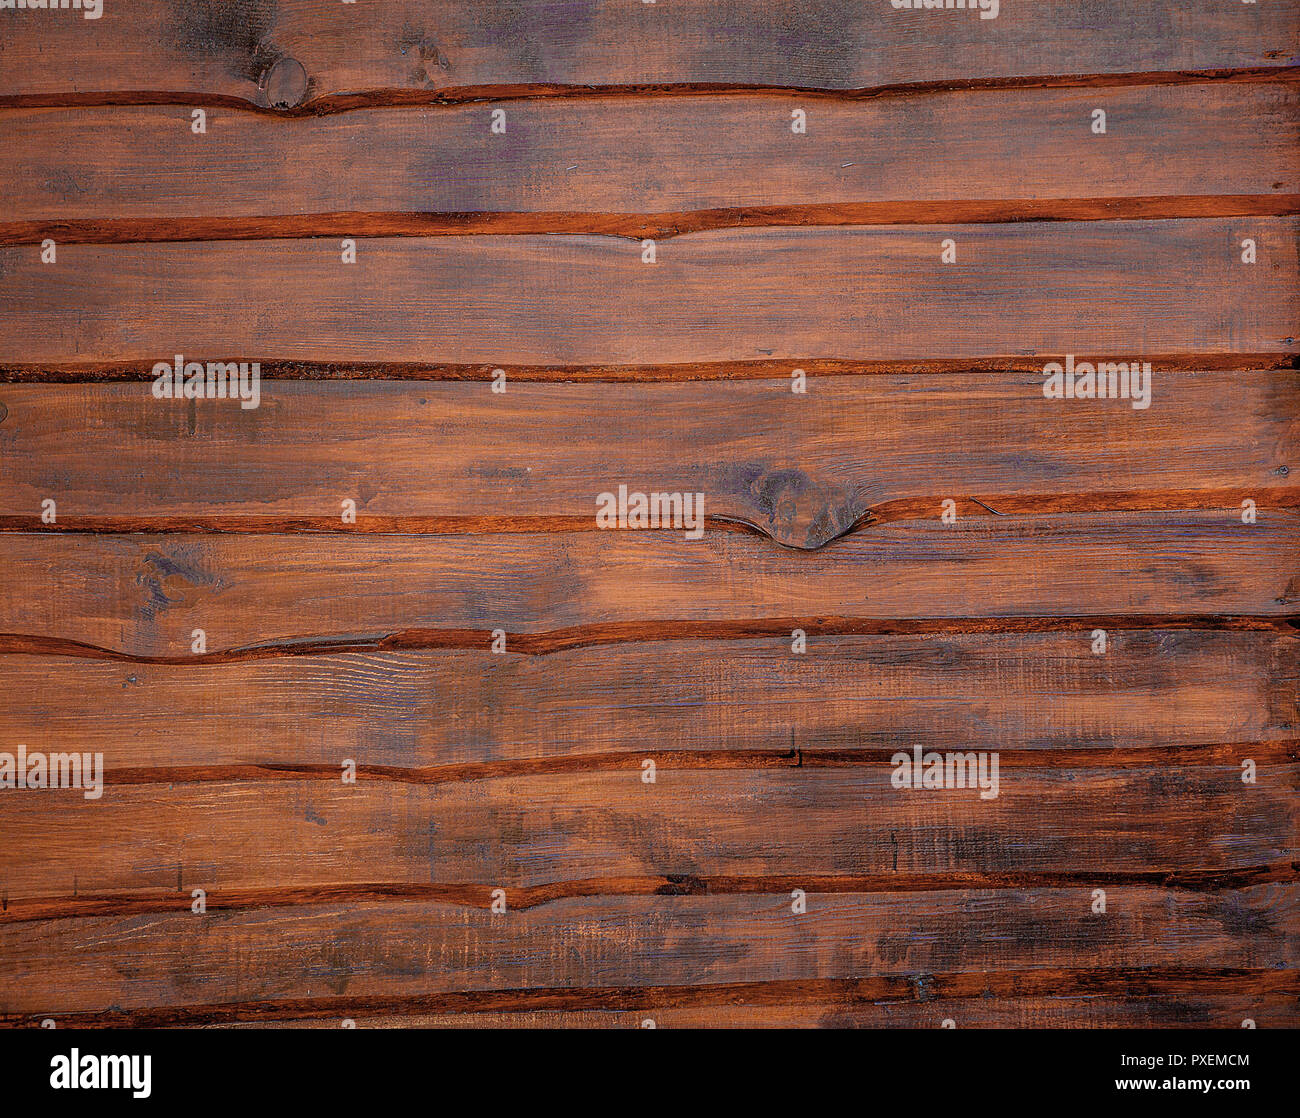 Dark old wooden table texture background top view. - Stock Image